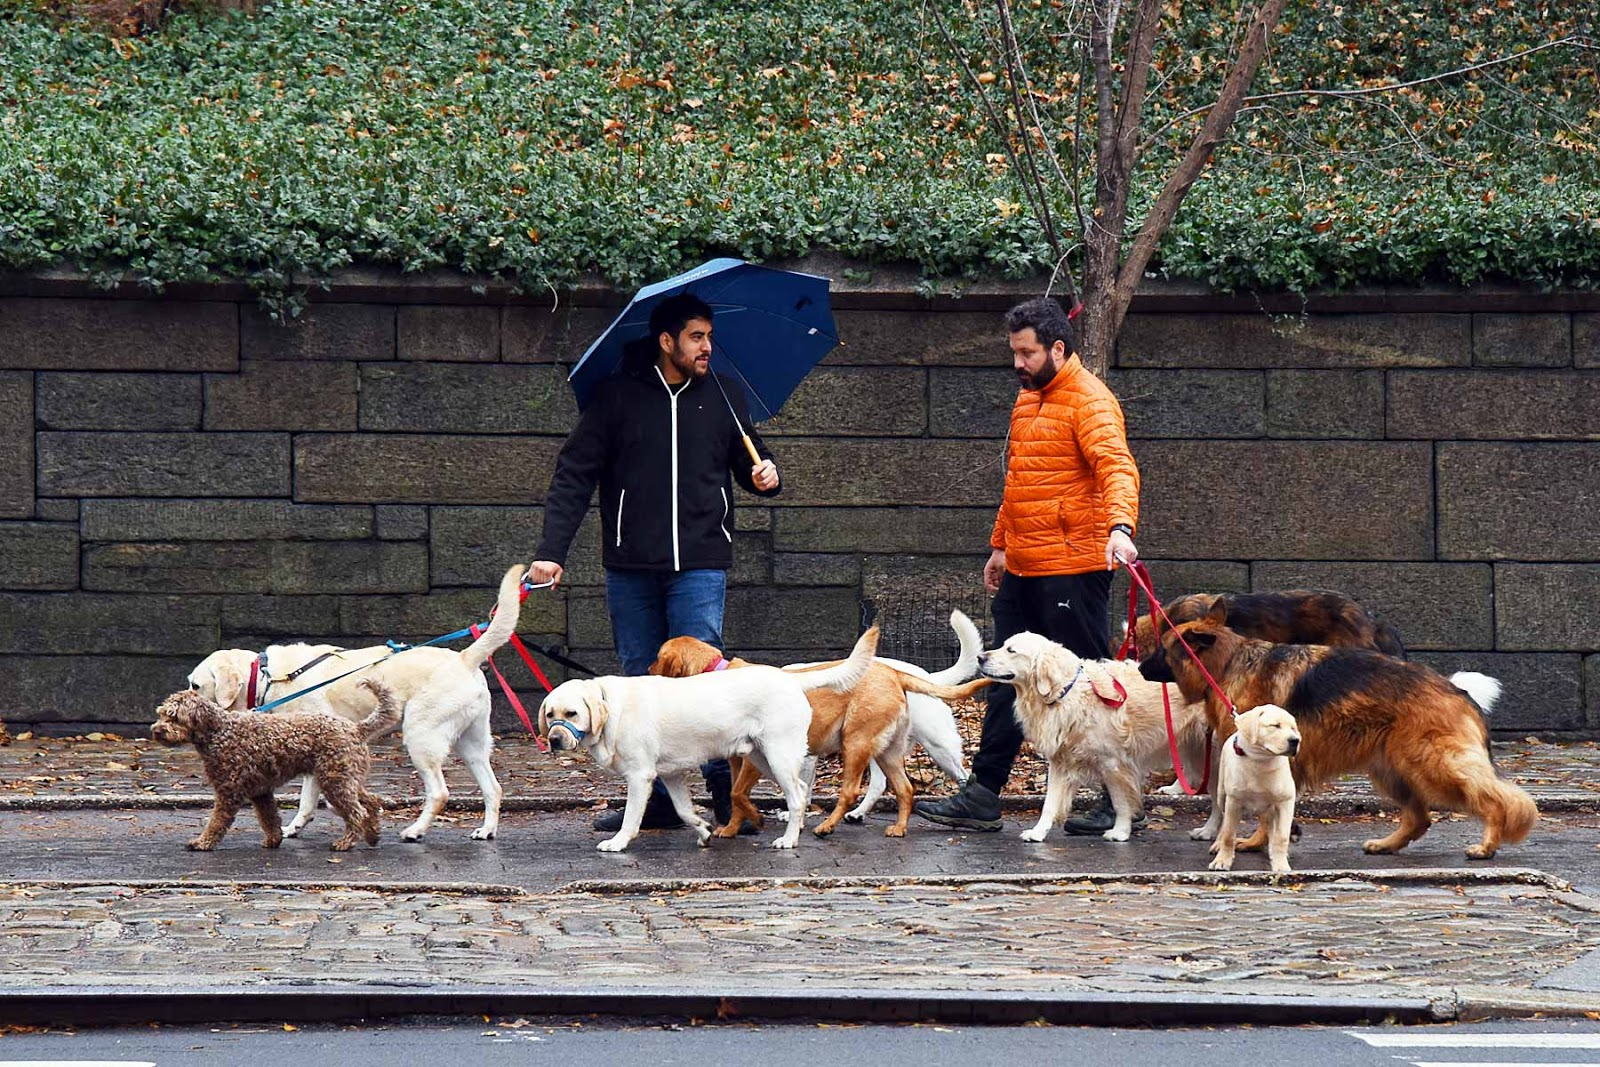 Dog walkers in New York City